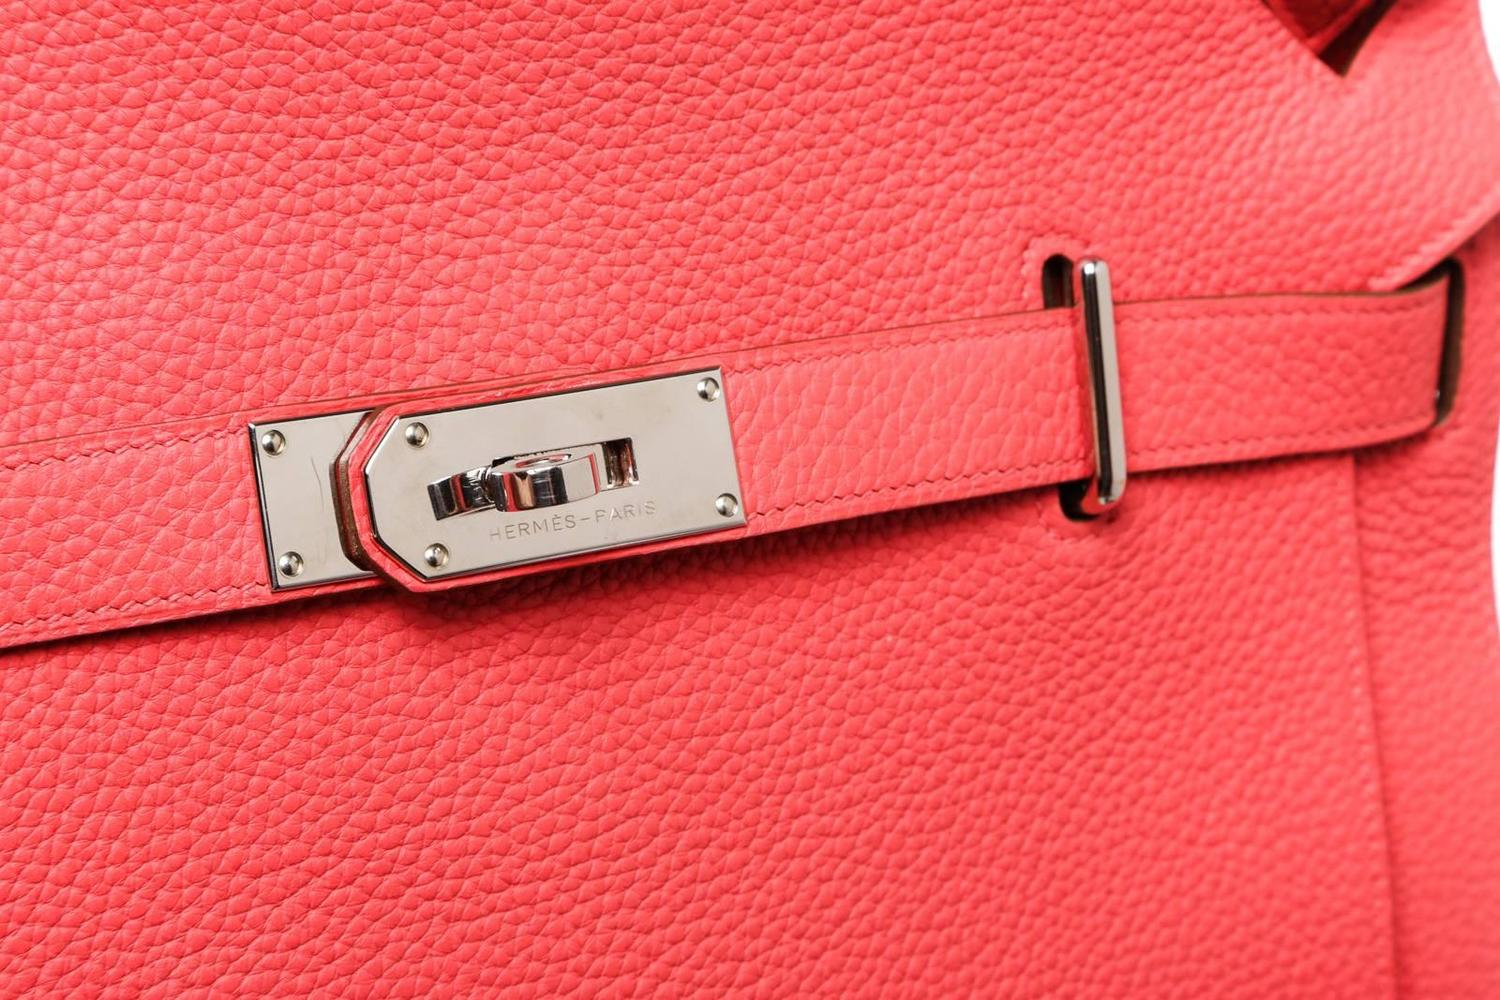 Hermes Pink Togo Leather Jypsiere 34cm Messenger Handbag SHW at ...